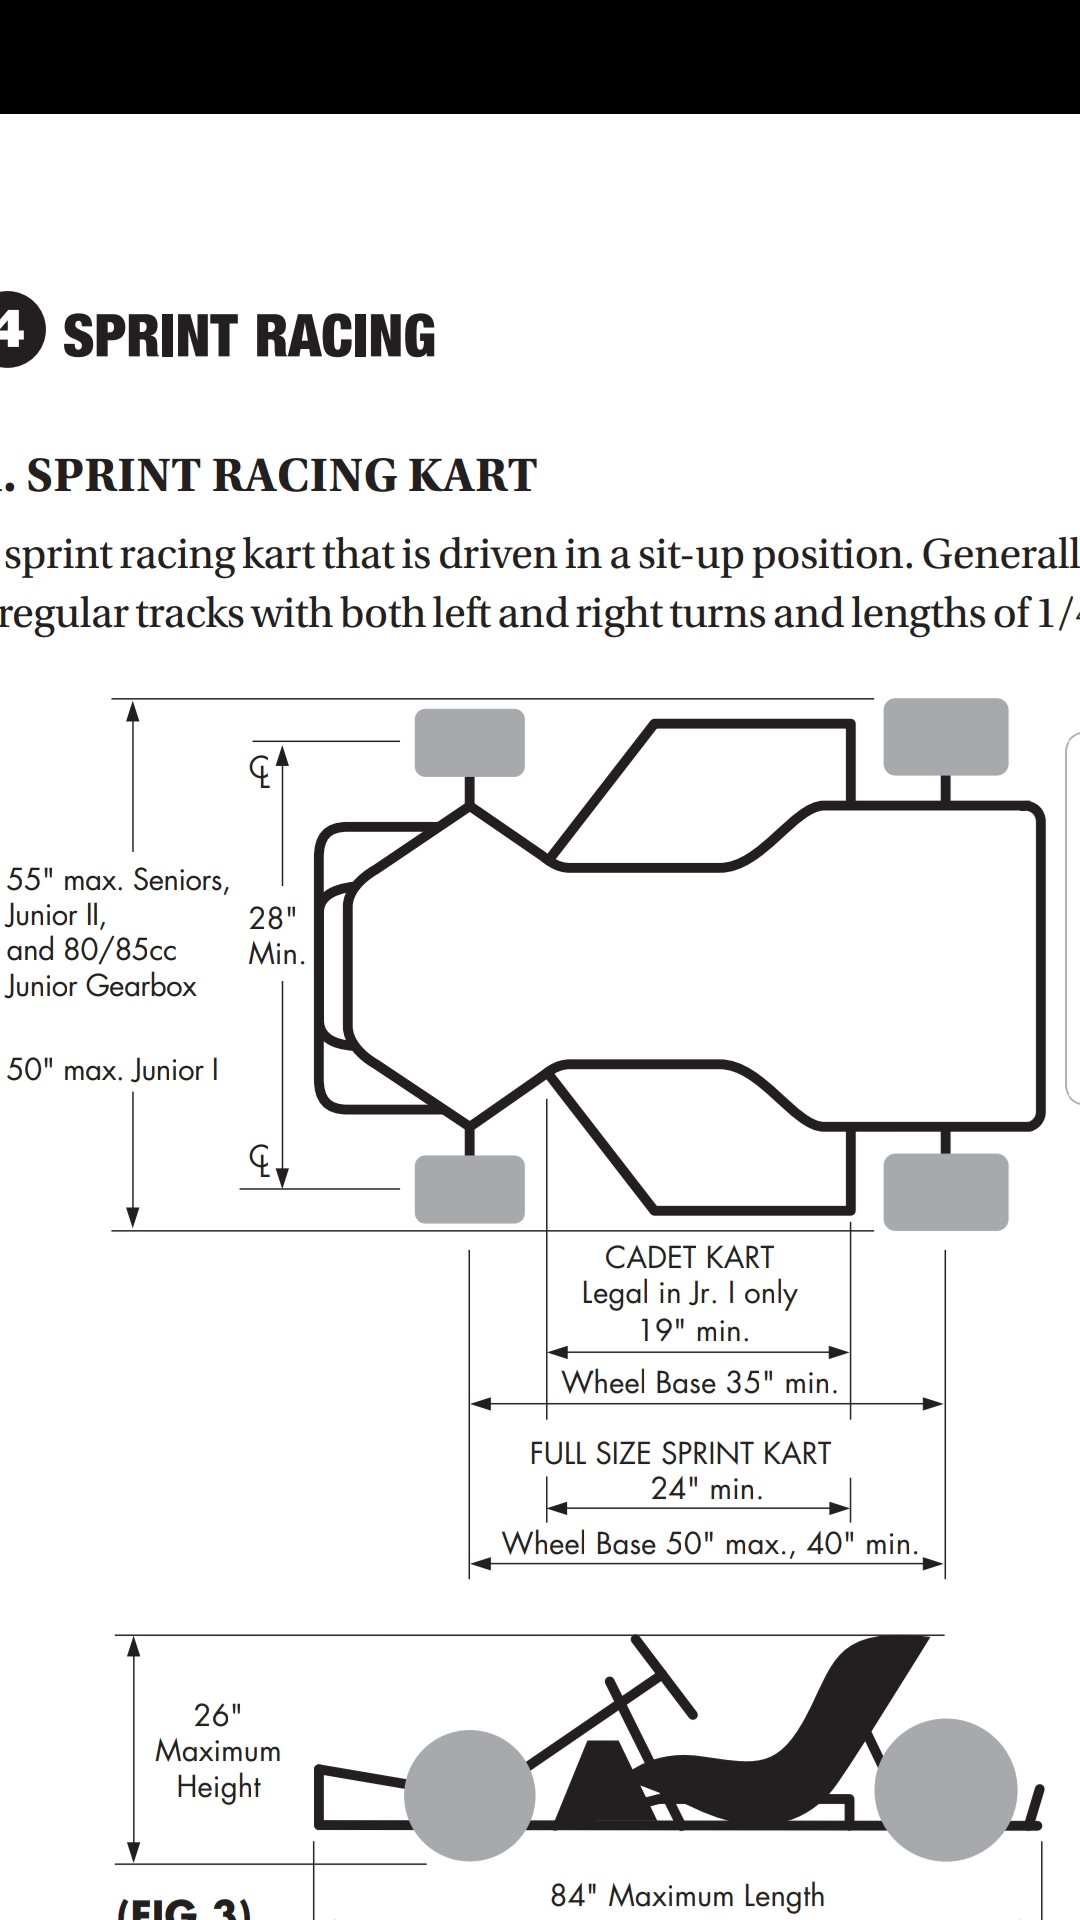 How To Measure Wheel Base >> Measuring Track Width Kartpulse Forums Karting S Fastest Growing